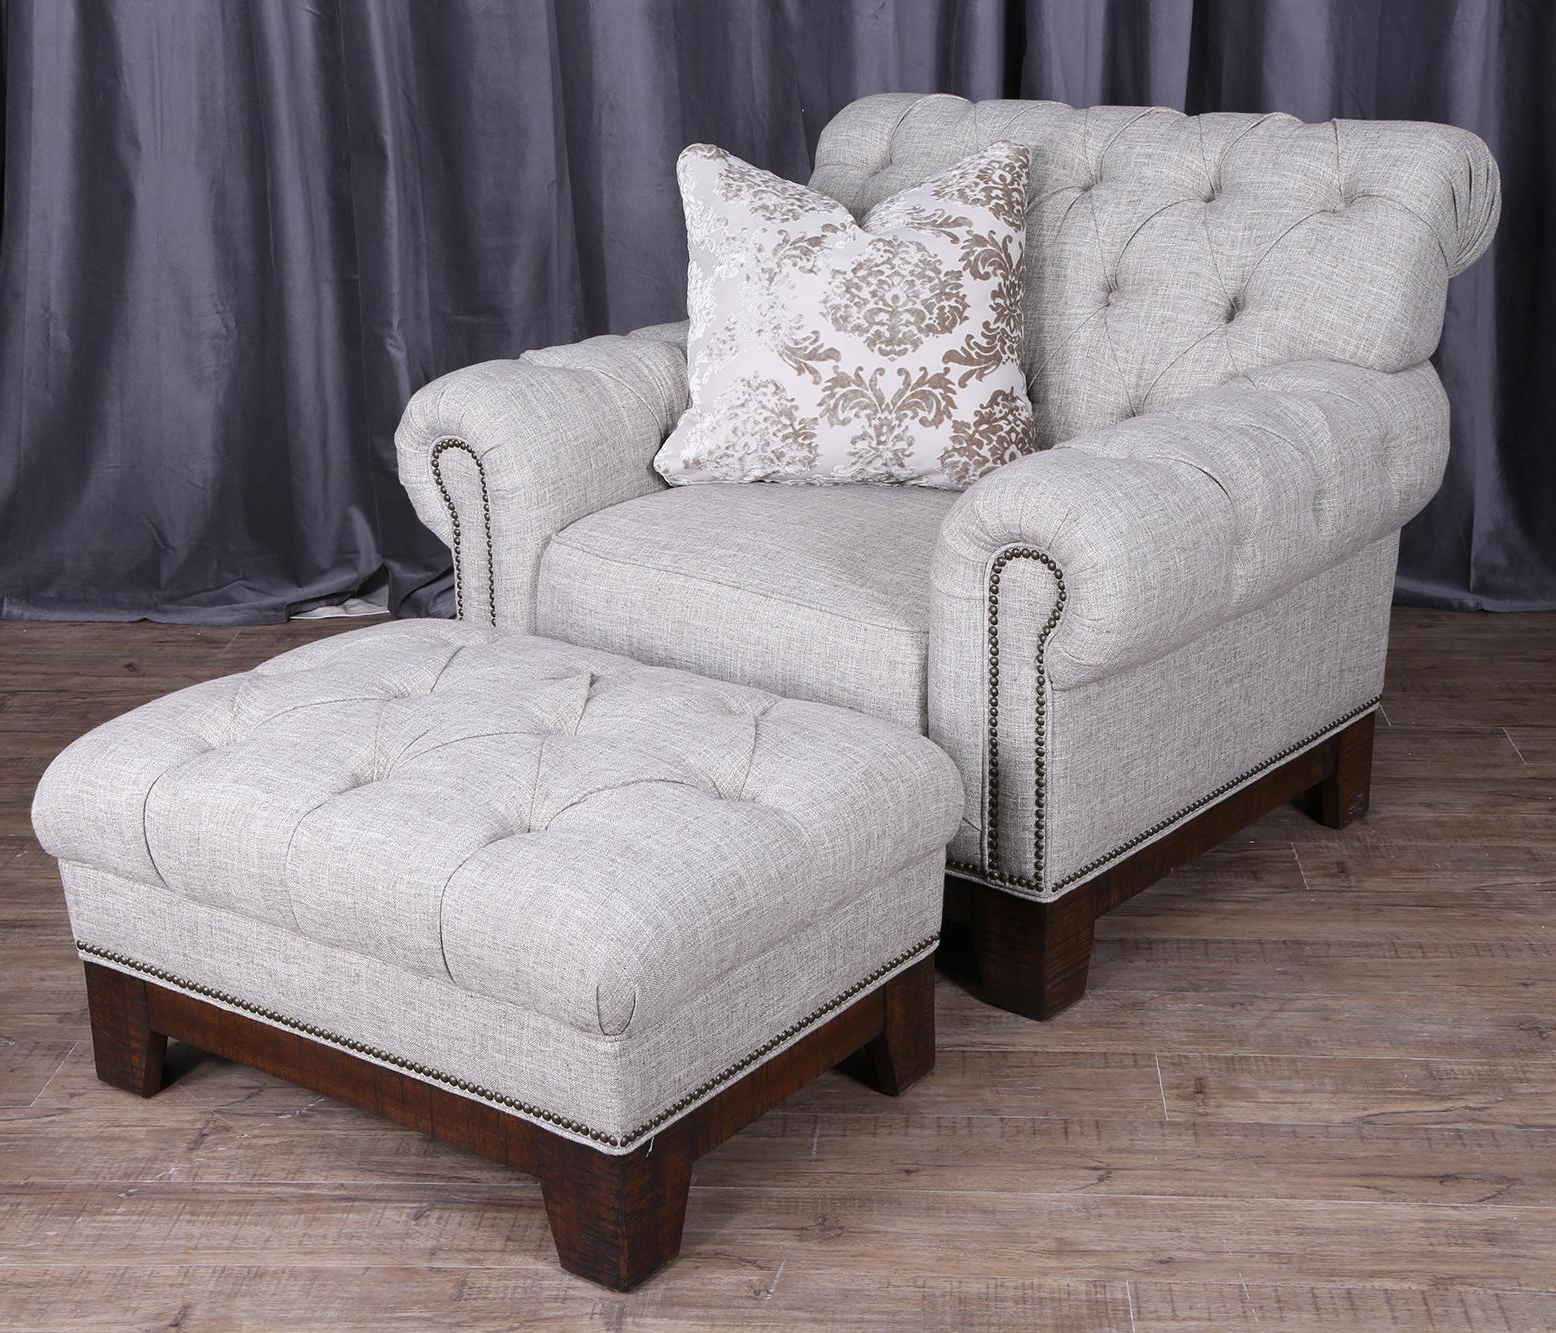 Popular Sofa Chair With Ottoman Pertaining To Magnussen Home Caitlyn Transitional Button Tufted Chair And Ottoman (Gallery 11 of 20)